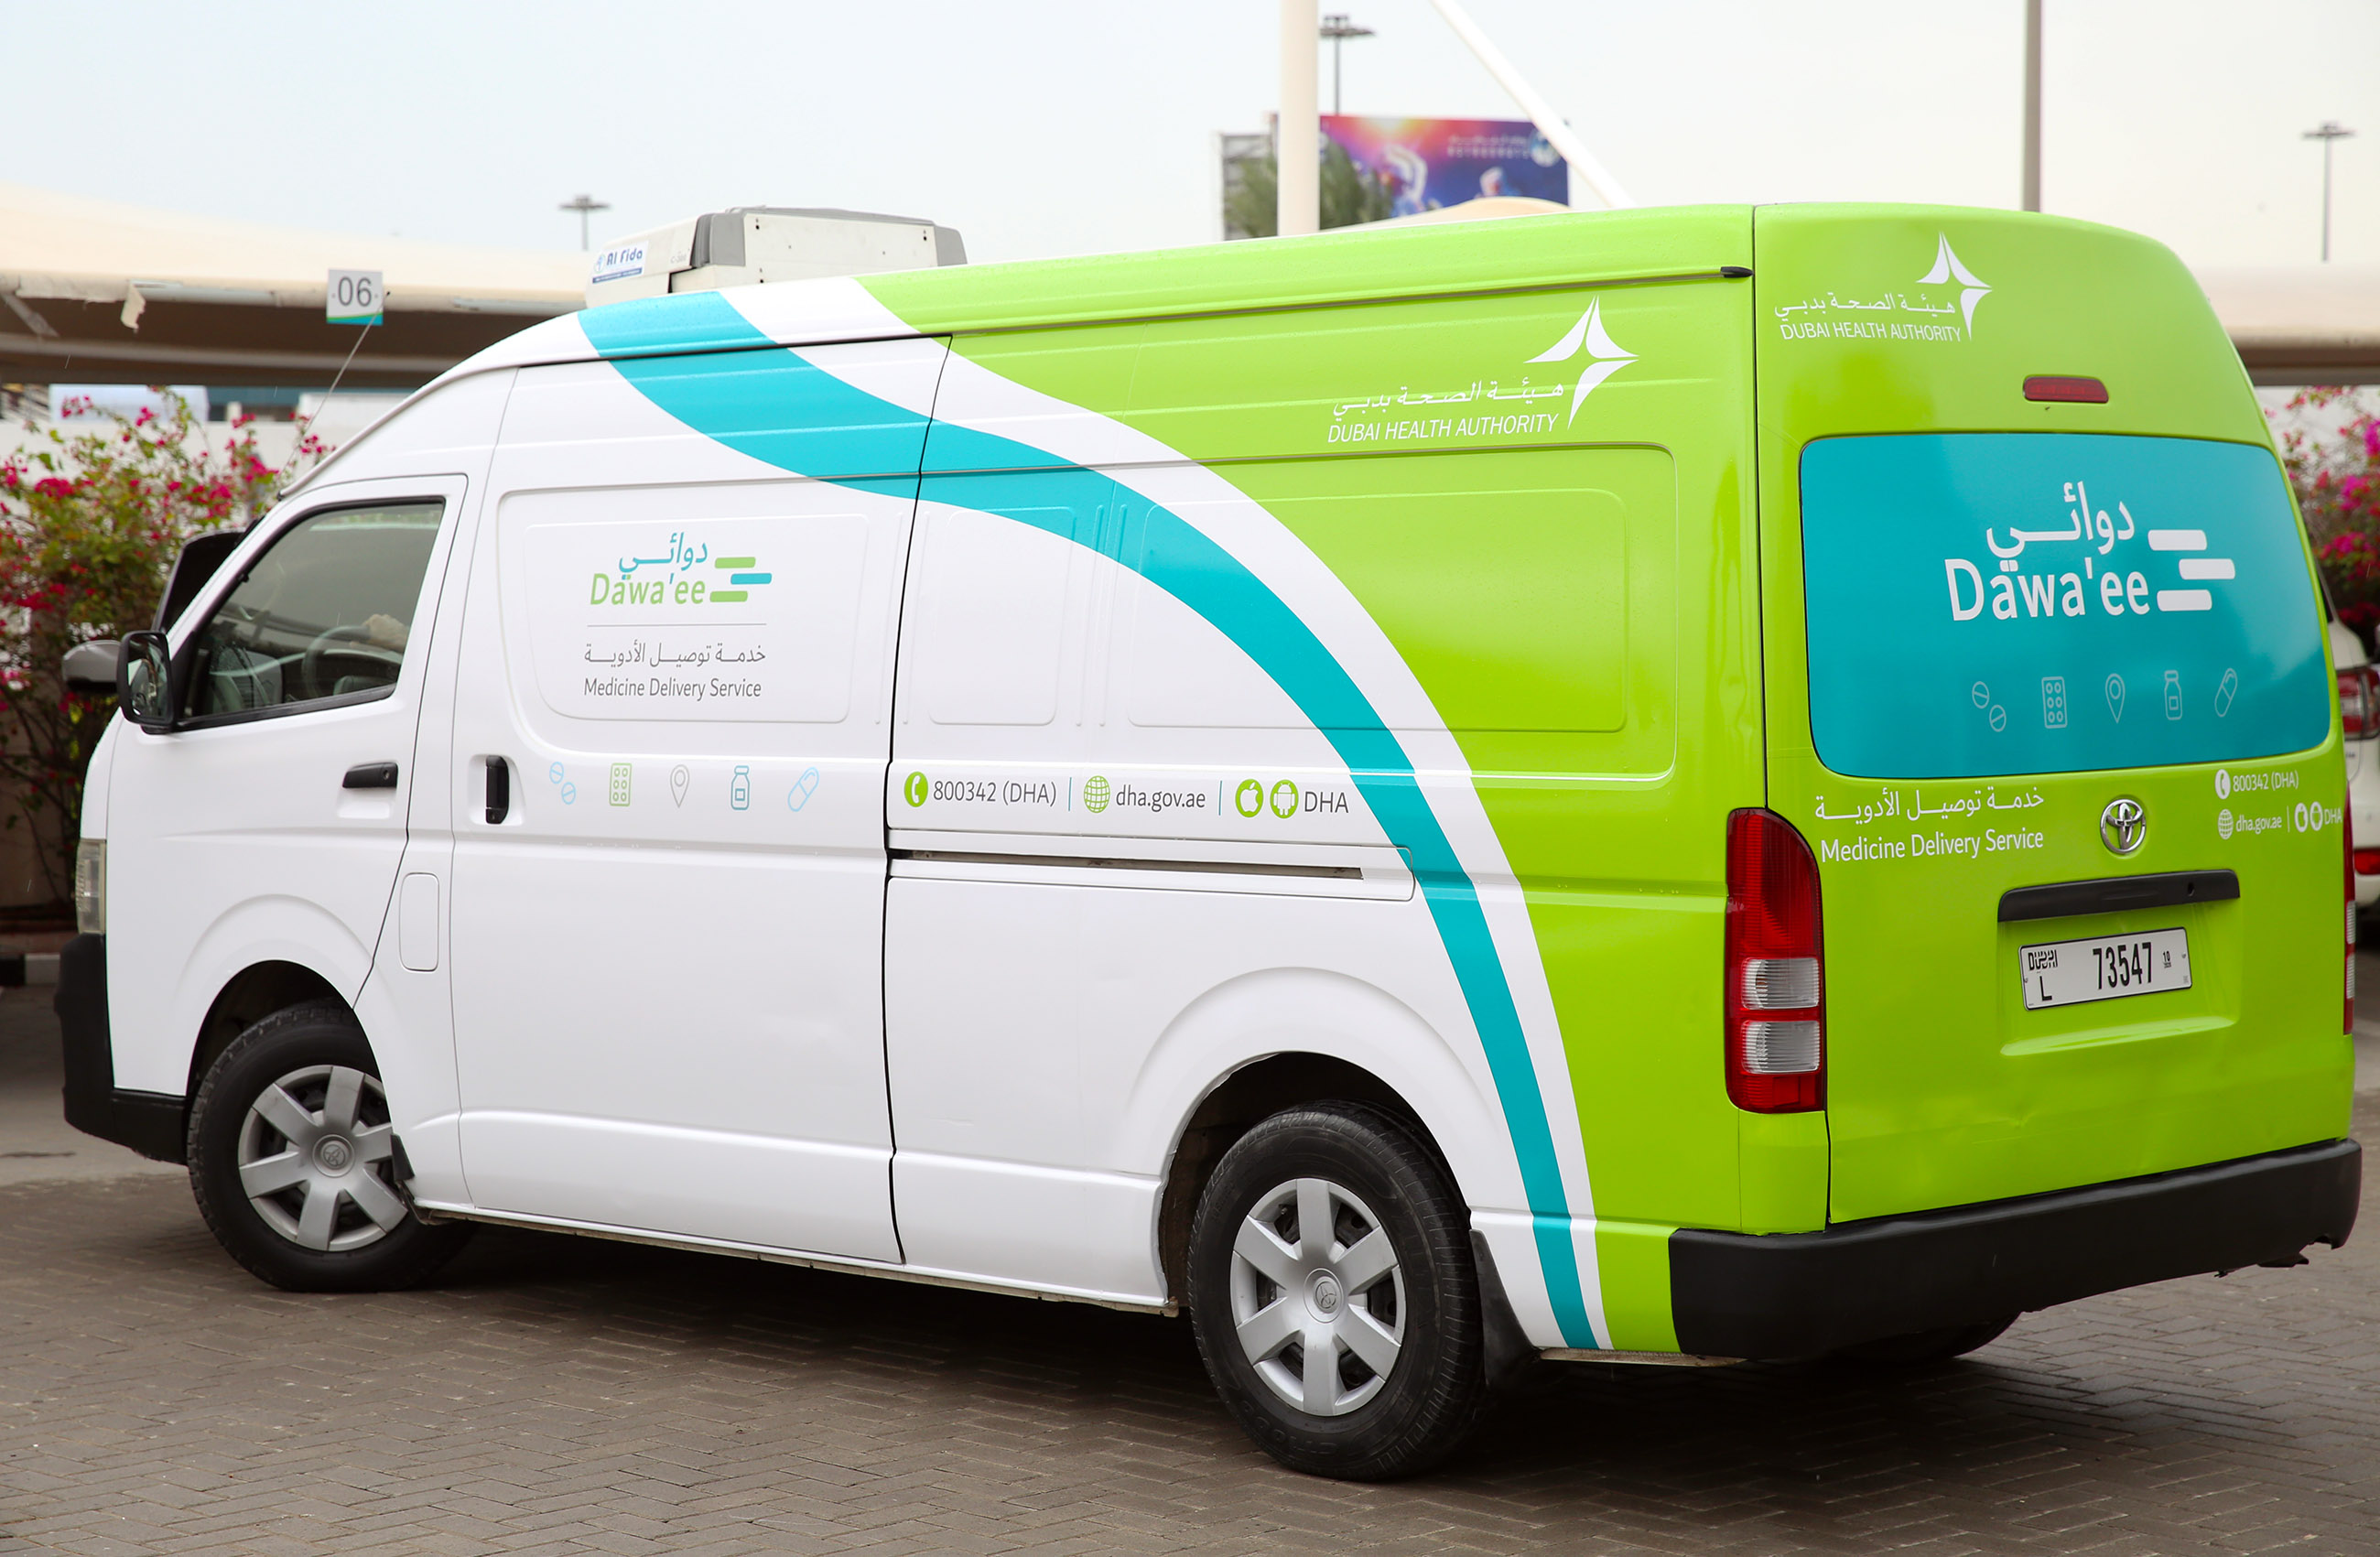 Photo: DHA delivers 800,000 medicines to patients' homes for free